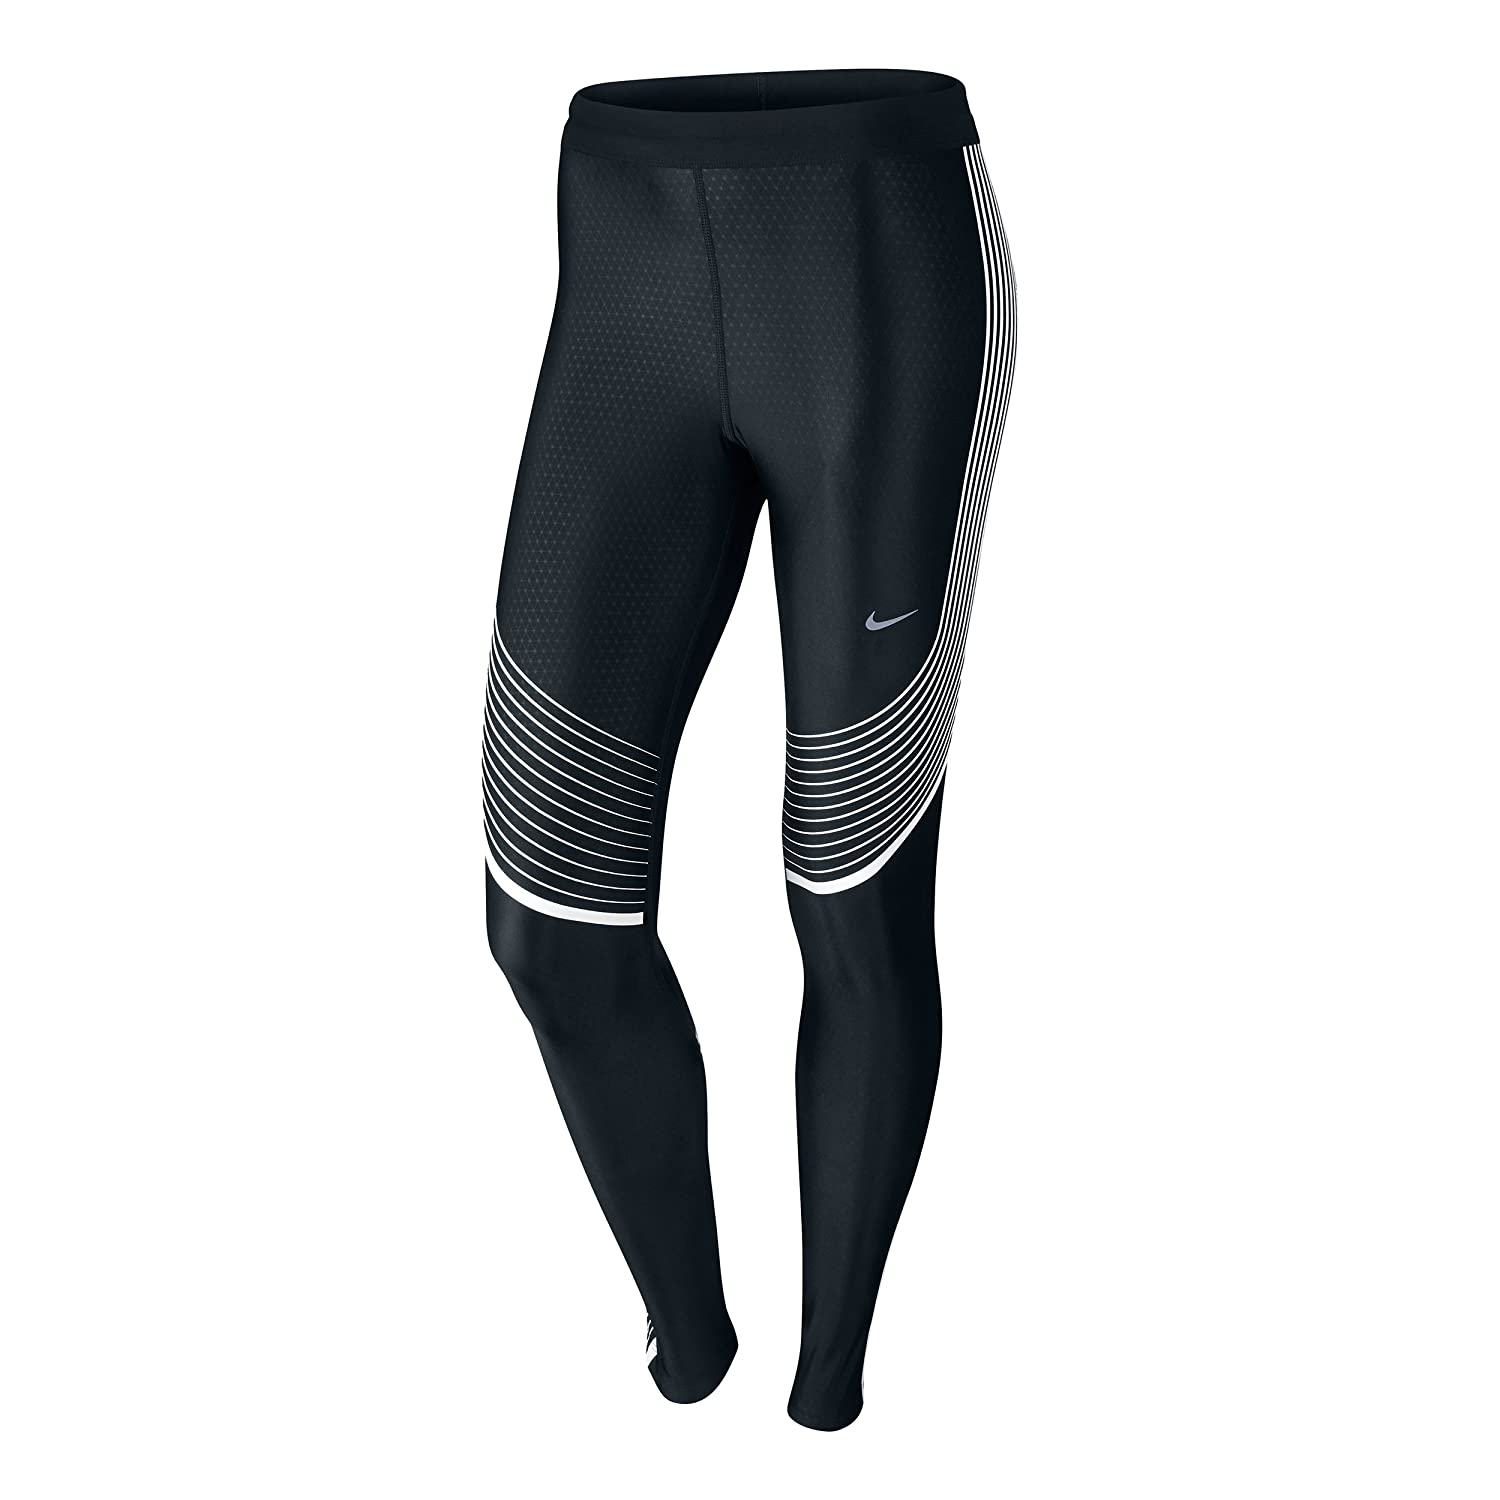 Men's Power Speed Compression